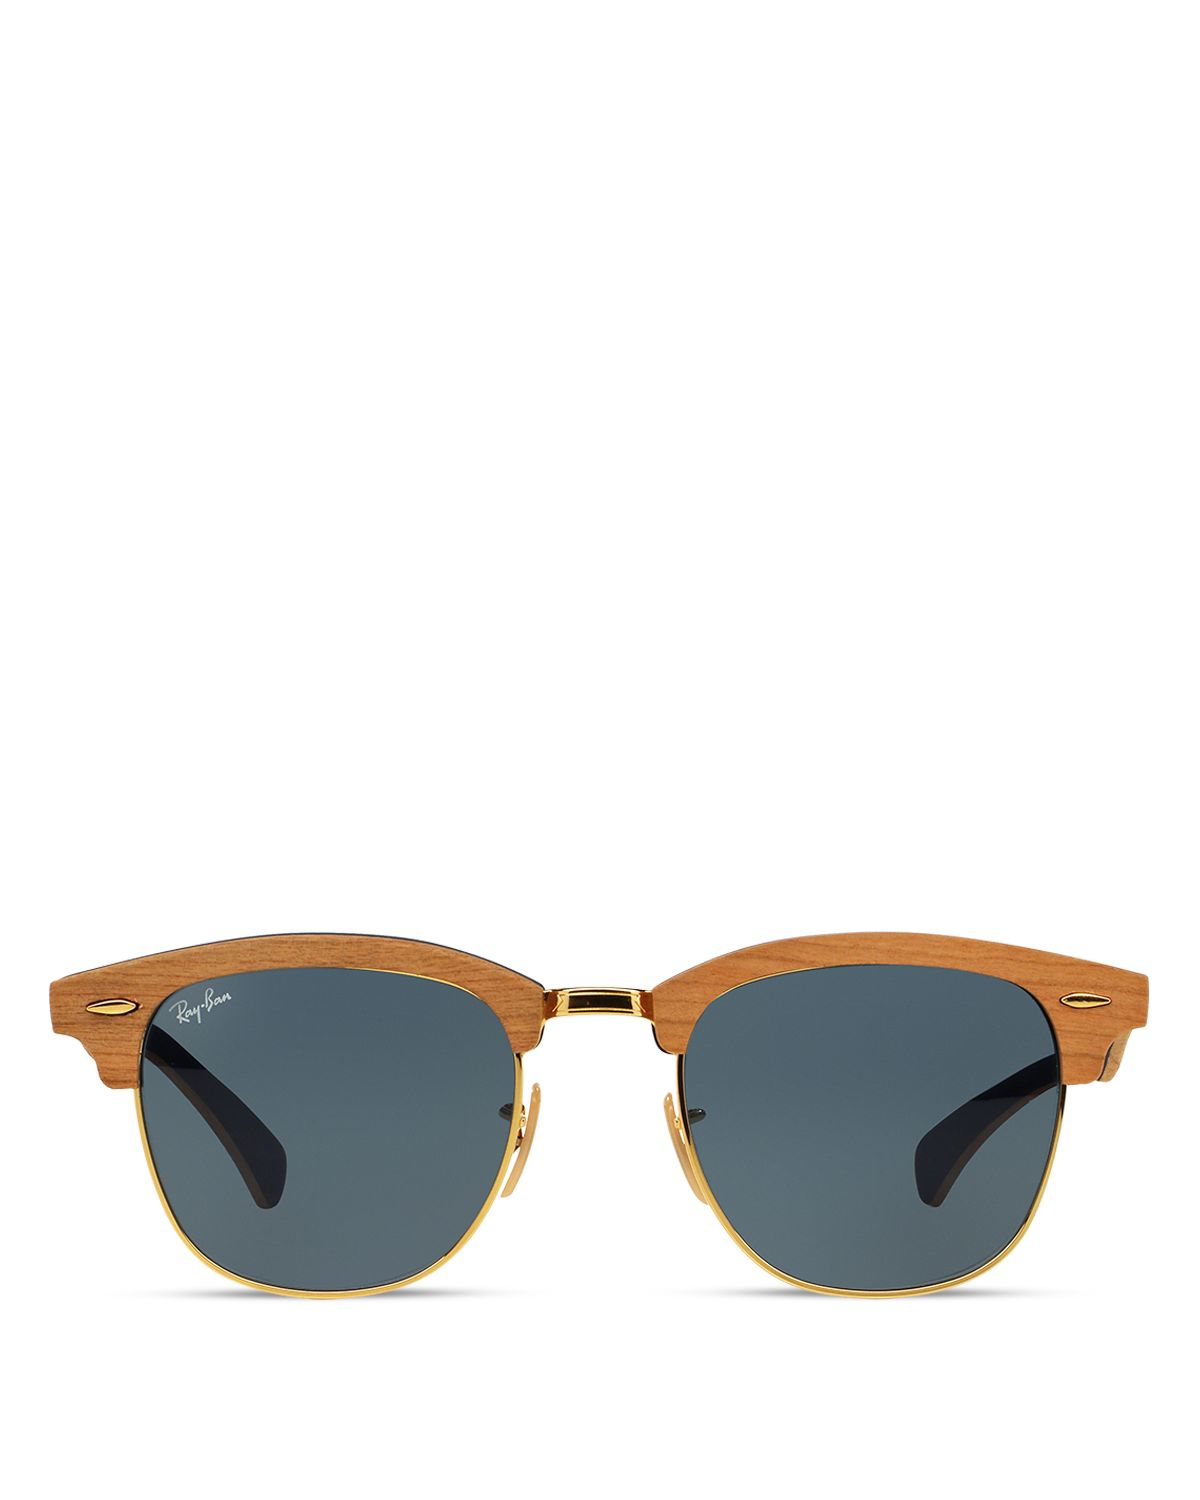 best ray ban sunglasses for wide face